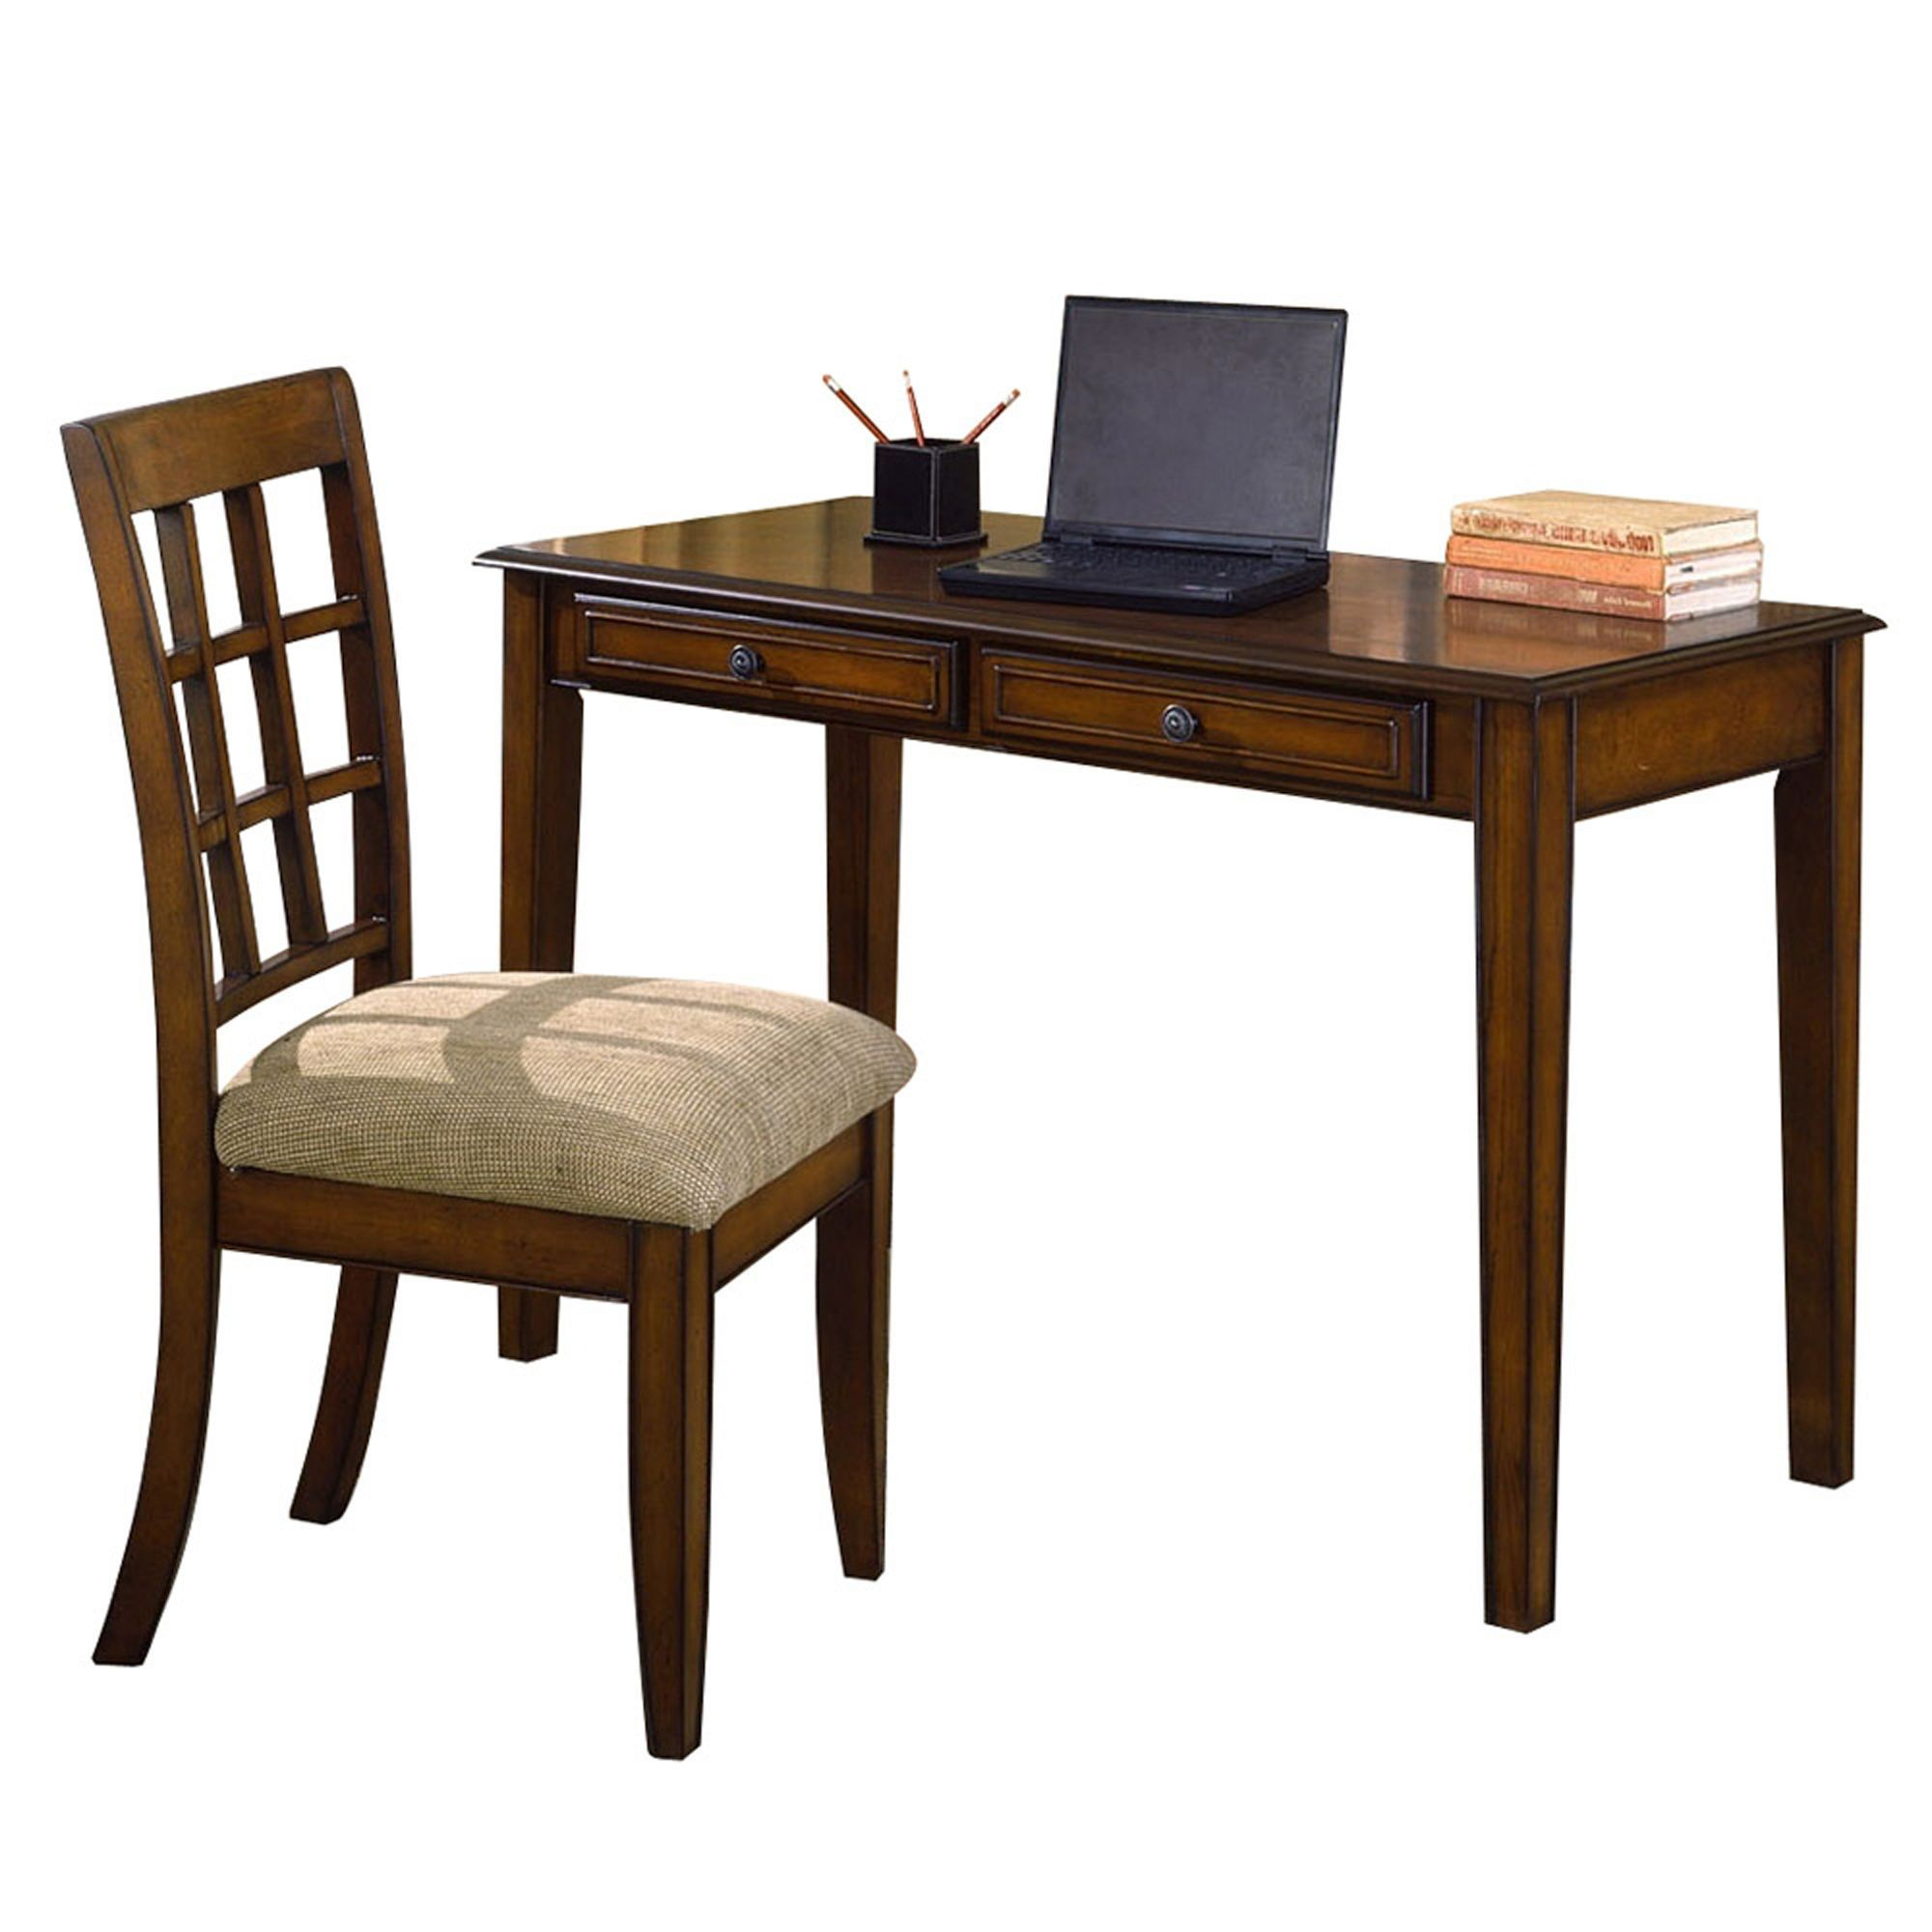 Desk And Chair Set Desk And Chair Set Best Home Office Desk Chair Set Office desk and chair set